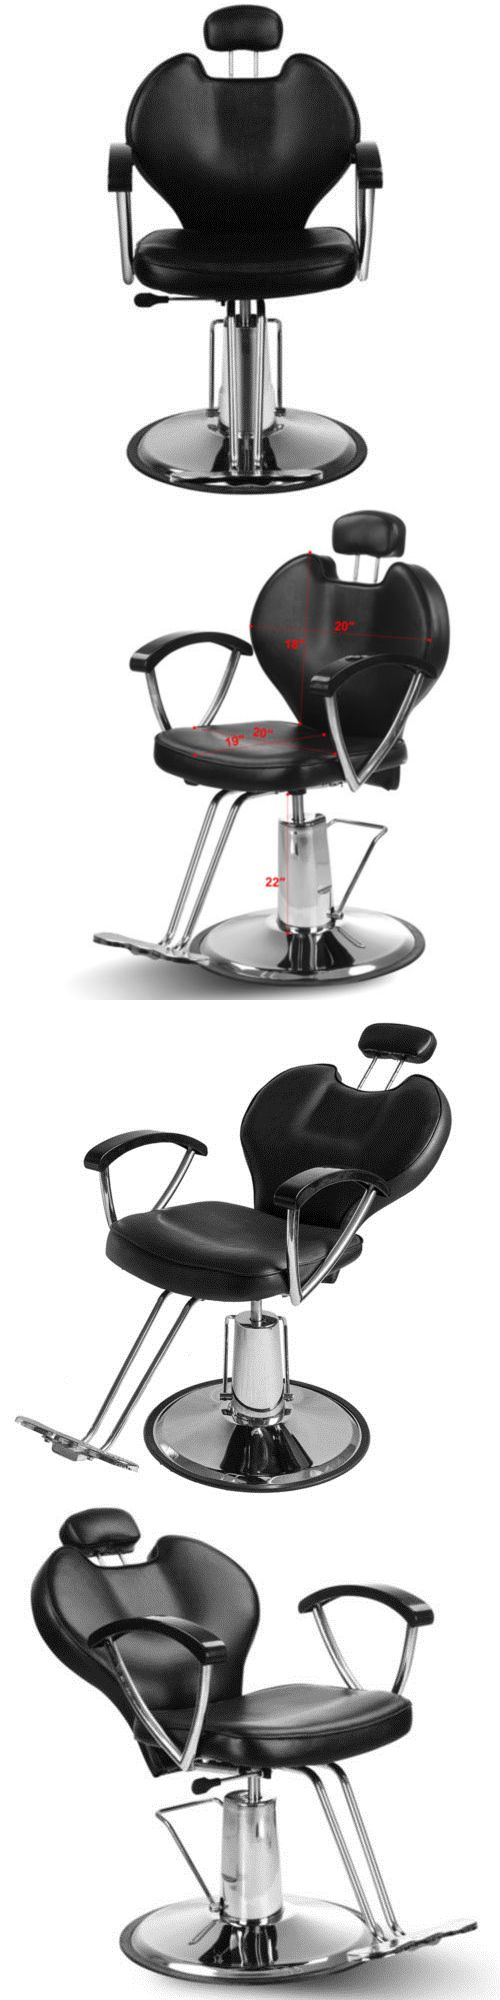 Barber Chairs 163092 Salon Barber Chair Hairdressing Tattoo